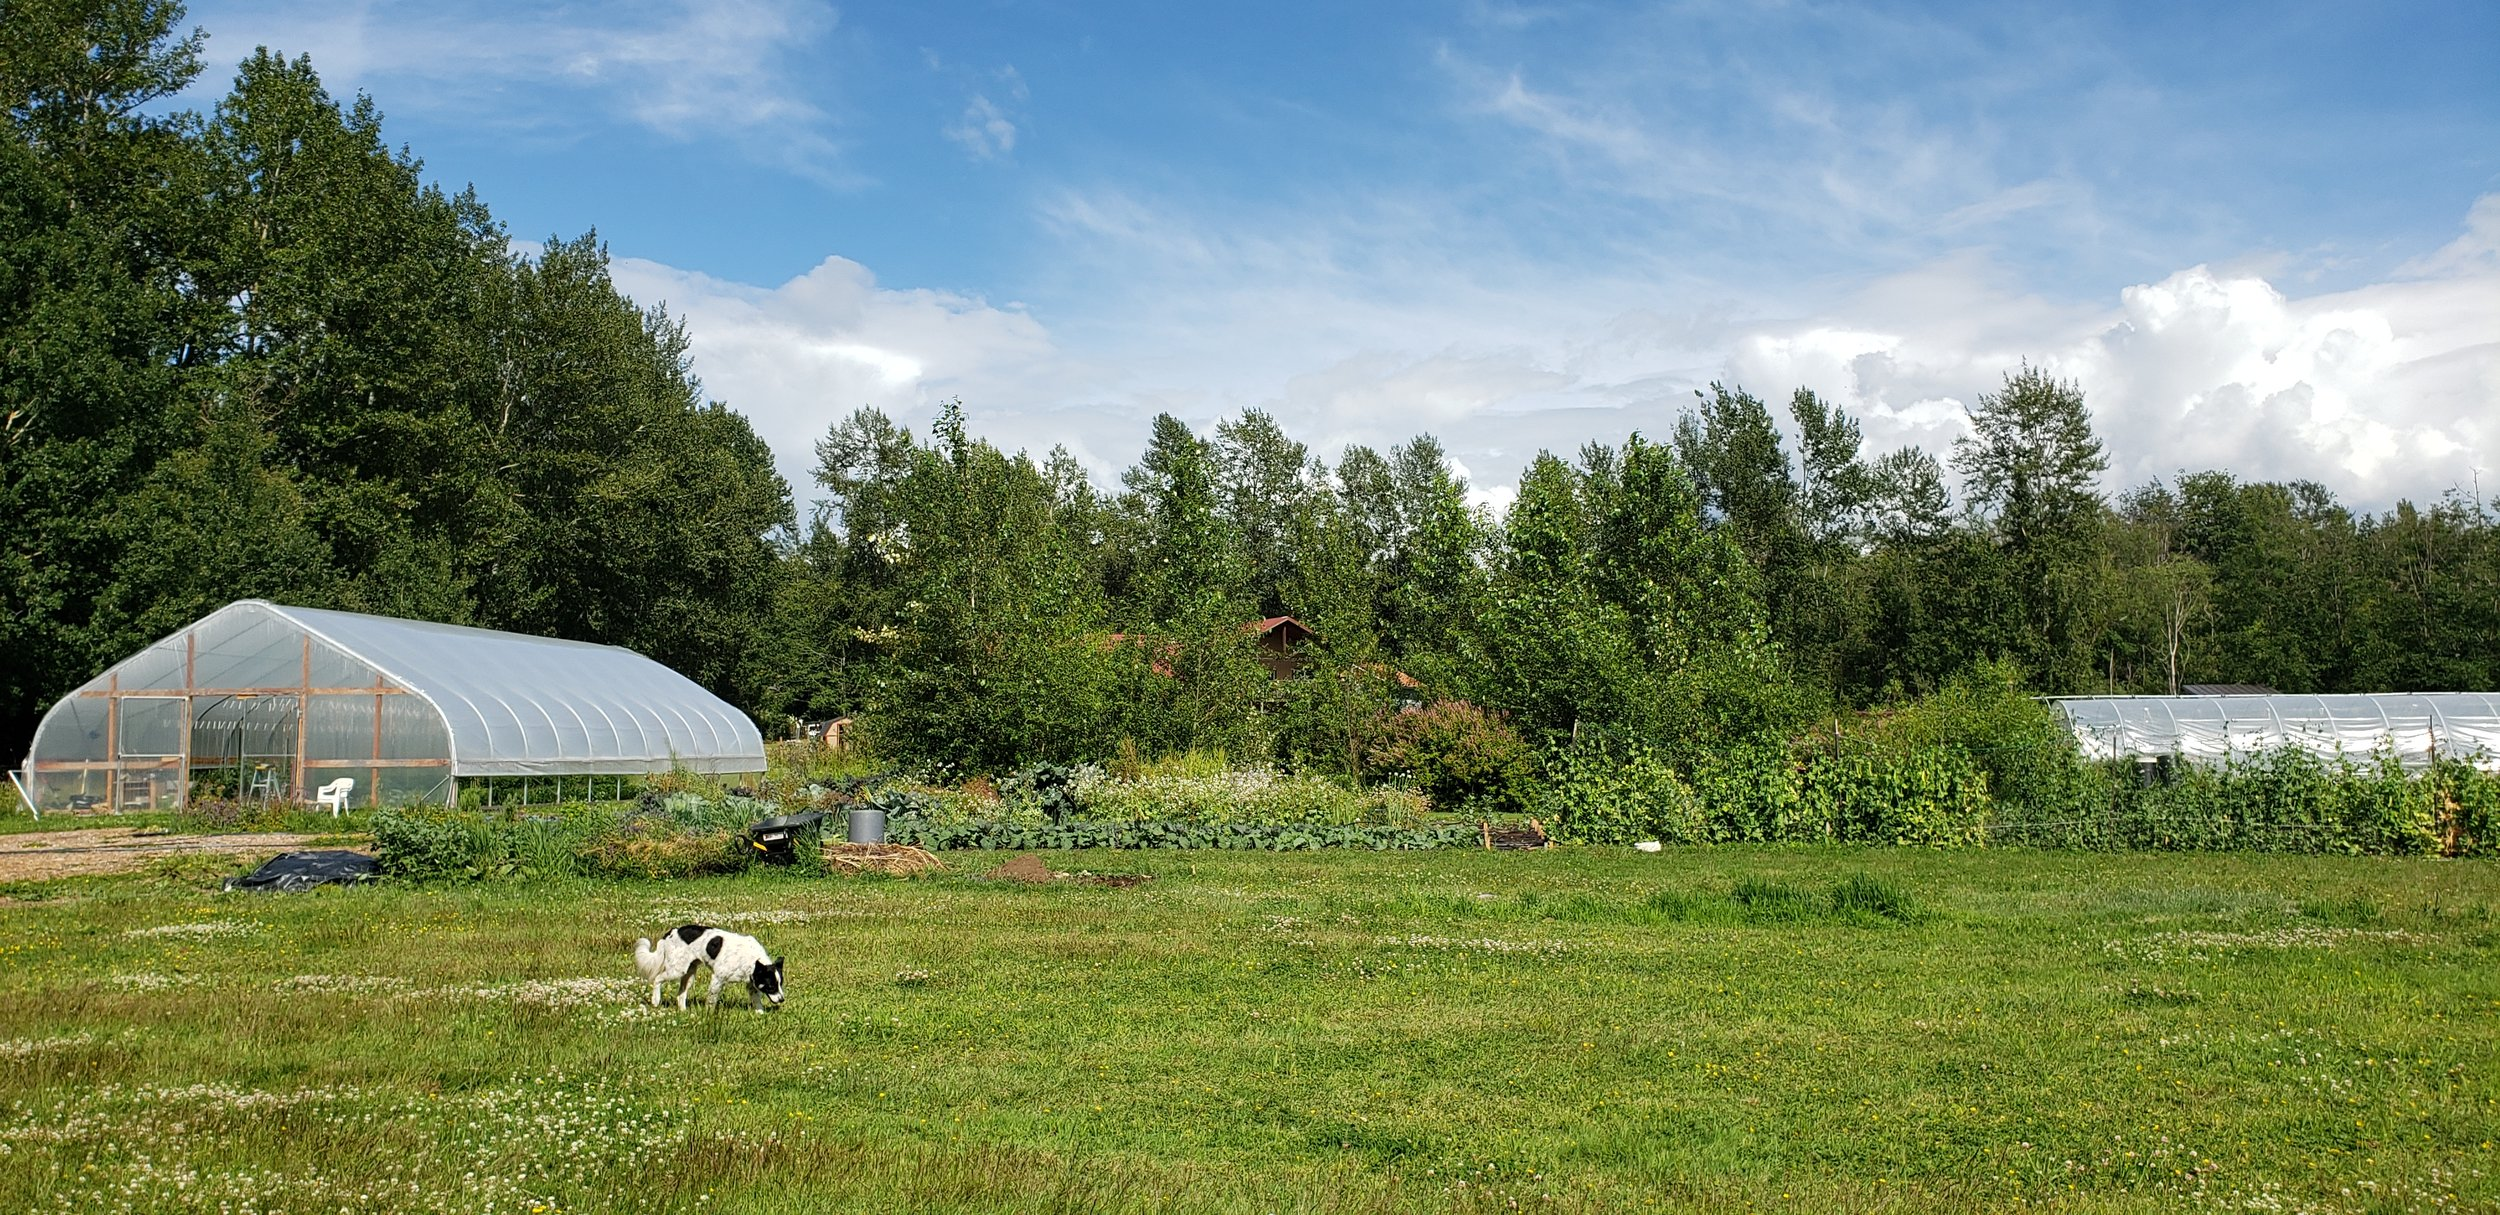 Nourish Craft Farm & Kitchen - Growing pizza and community from the ground up.